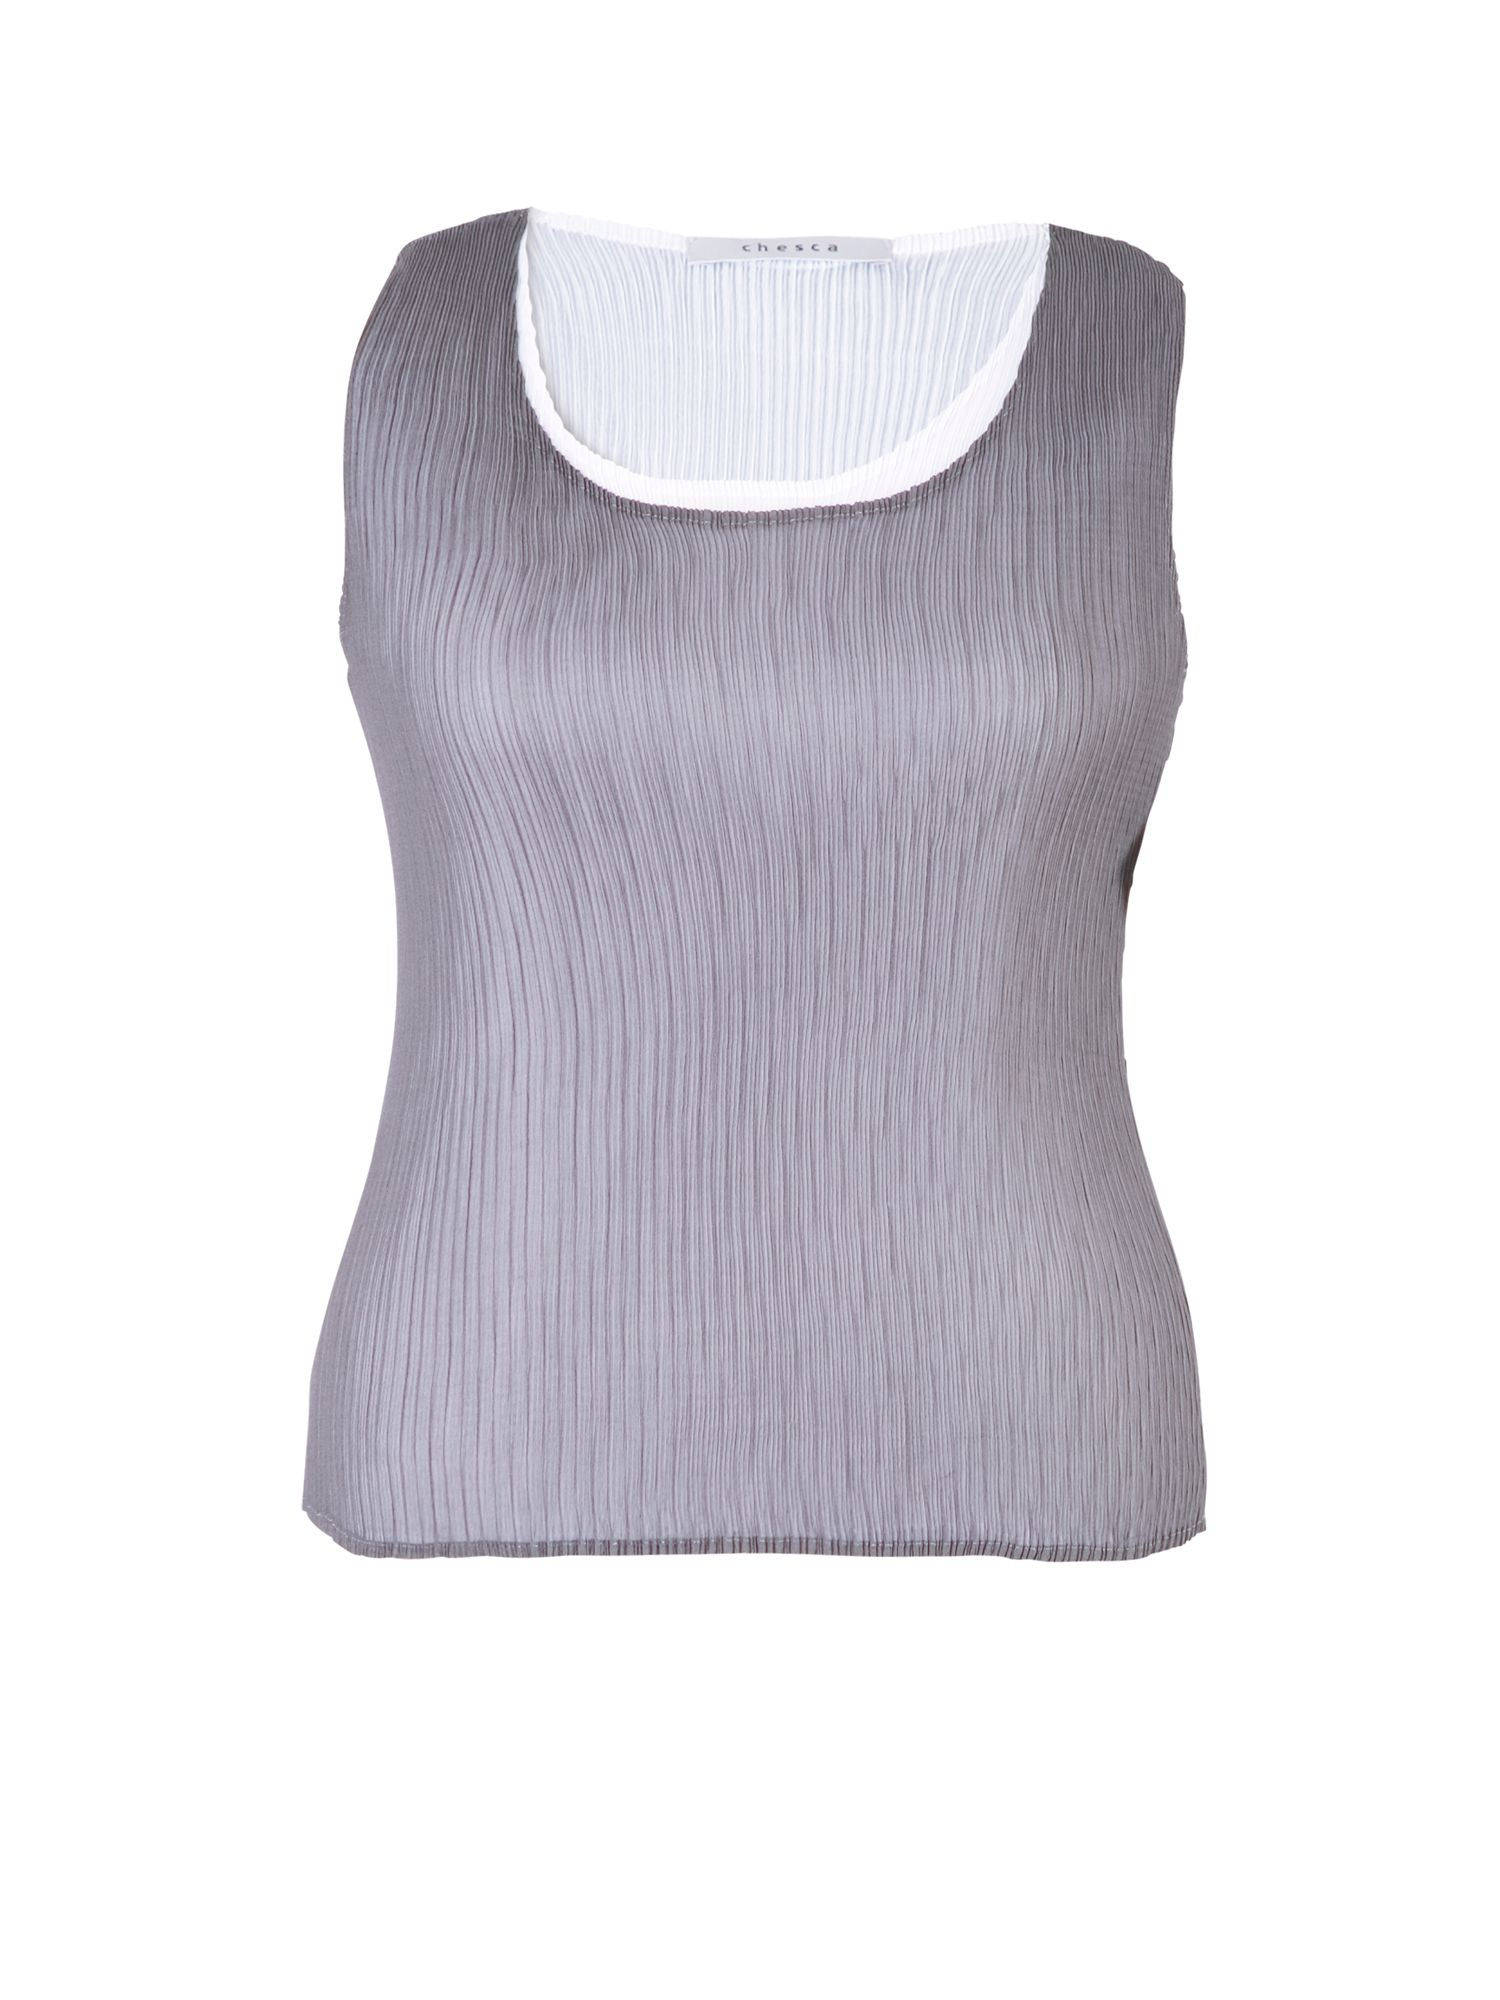 Double Layer Reverisble Camisole